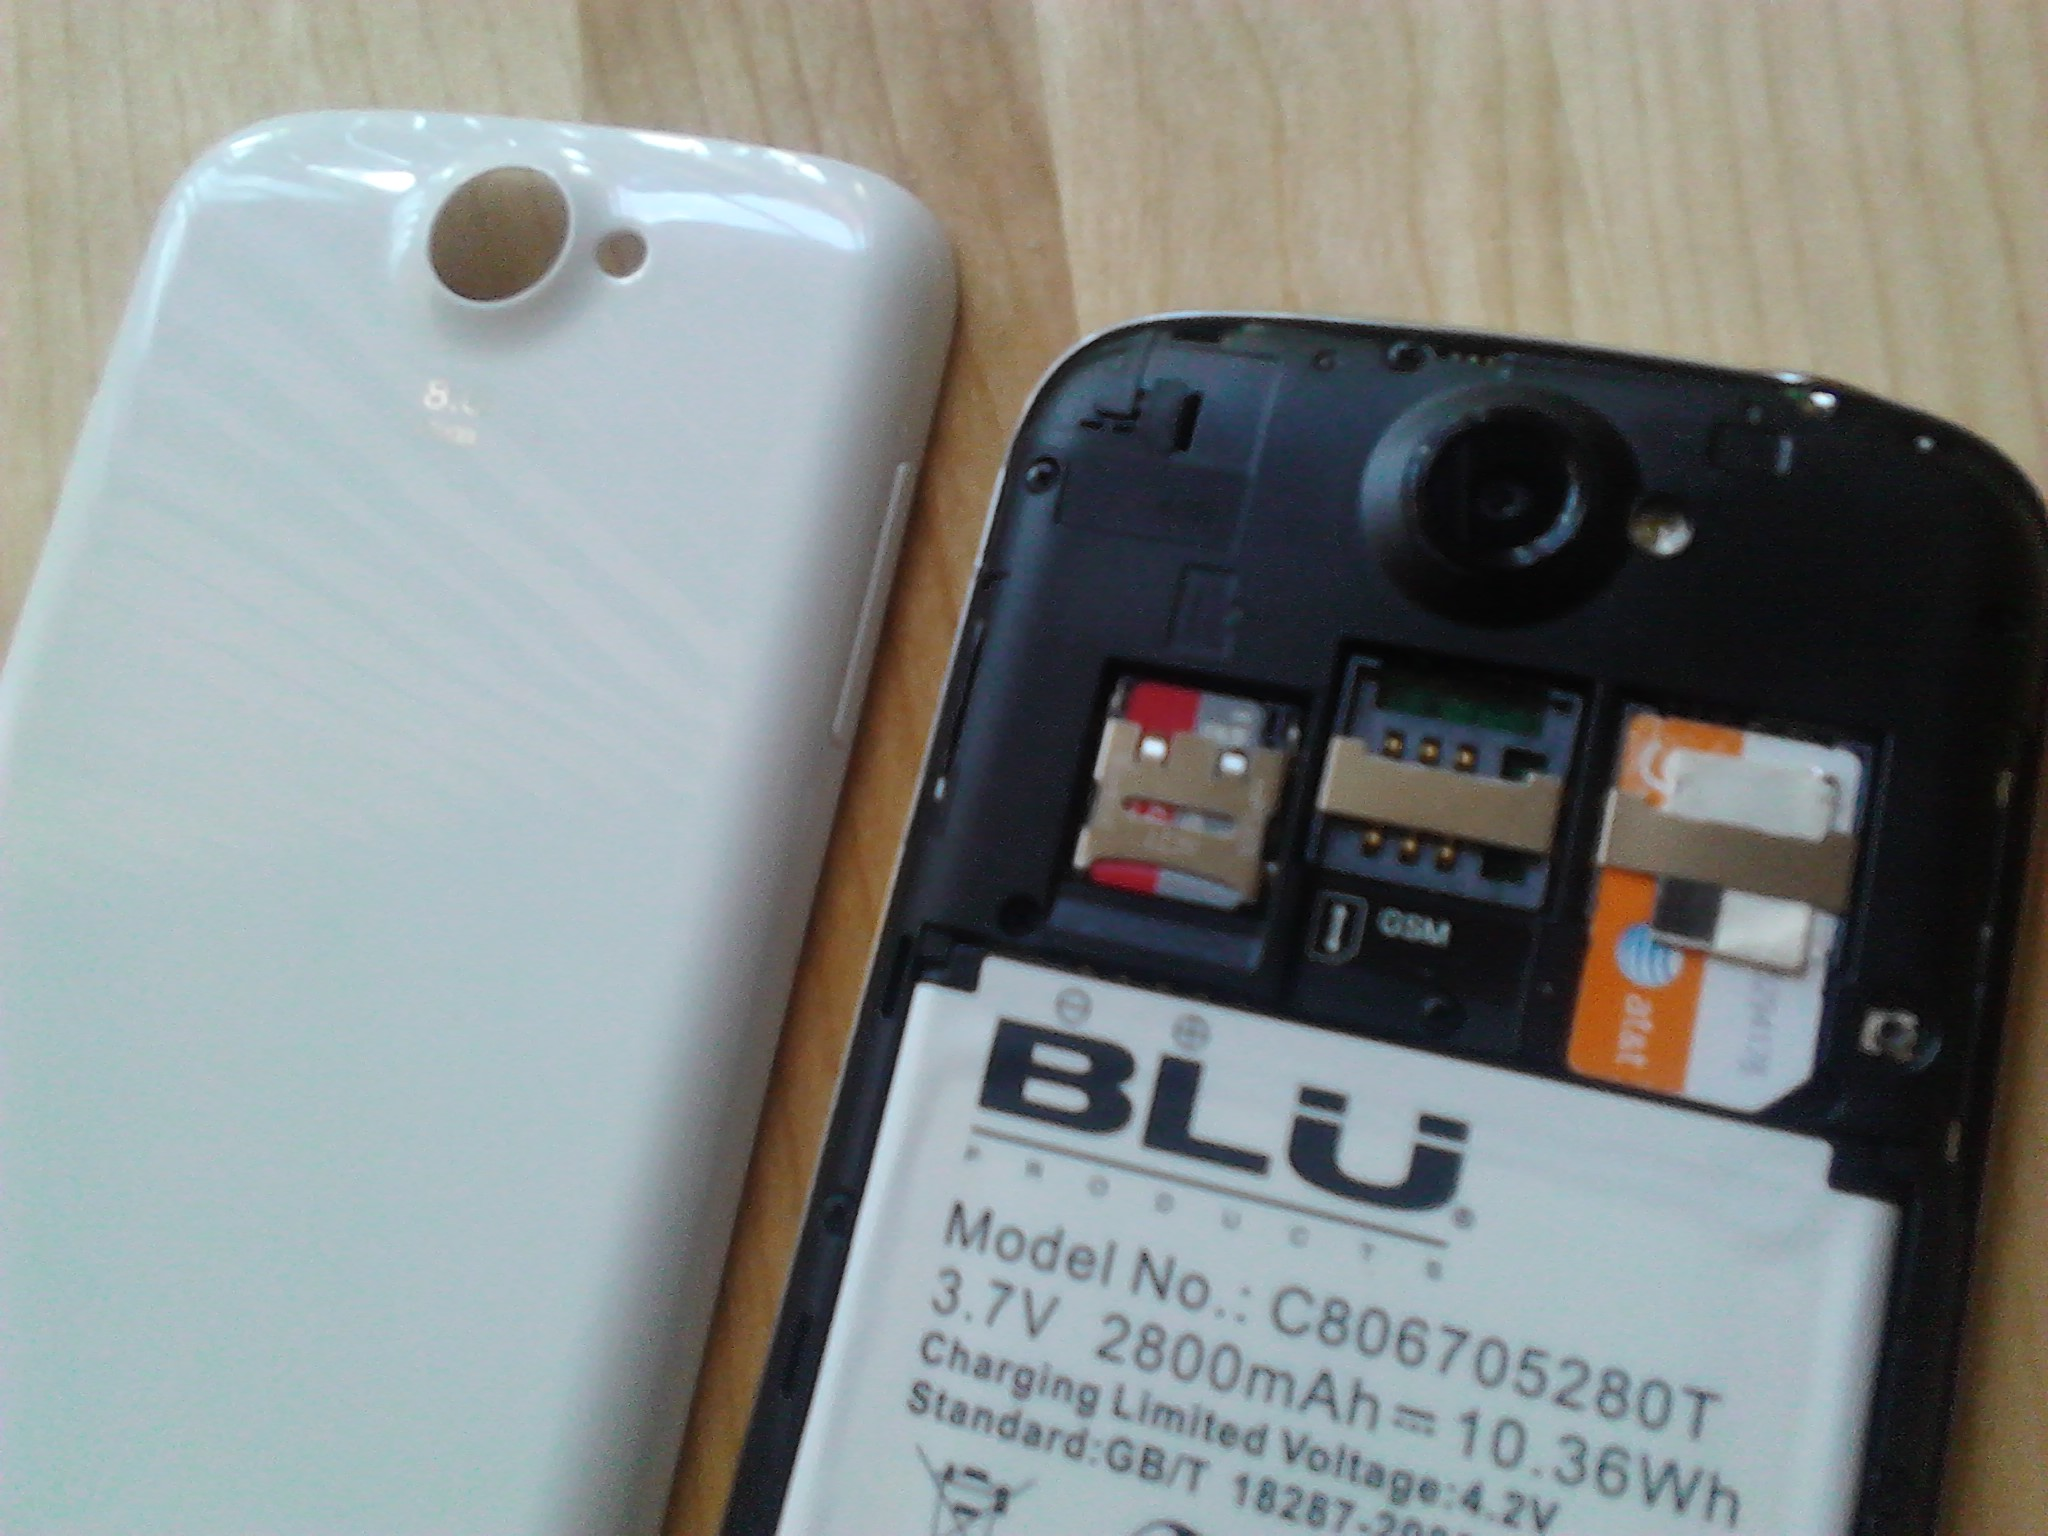 APN BLU Studio 5 3s AT&T – From an other-wise-sane perspective